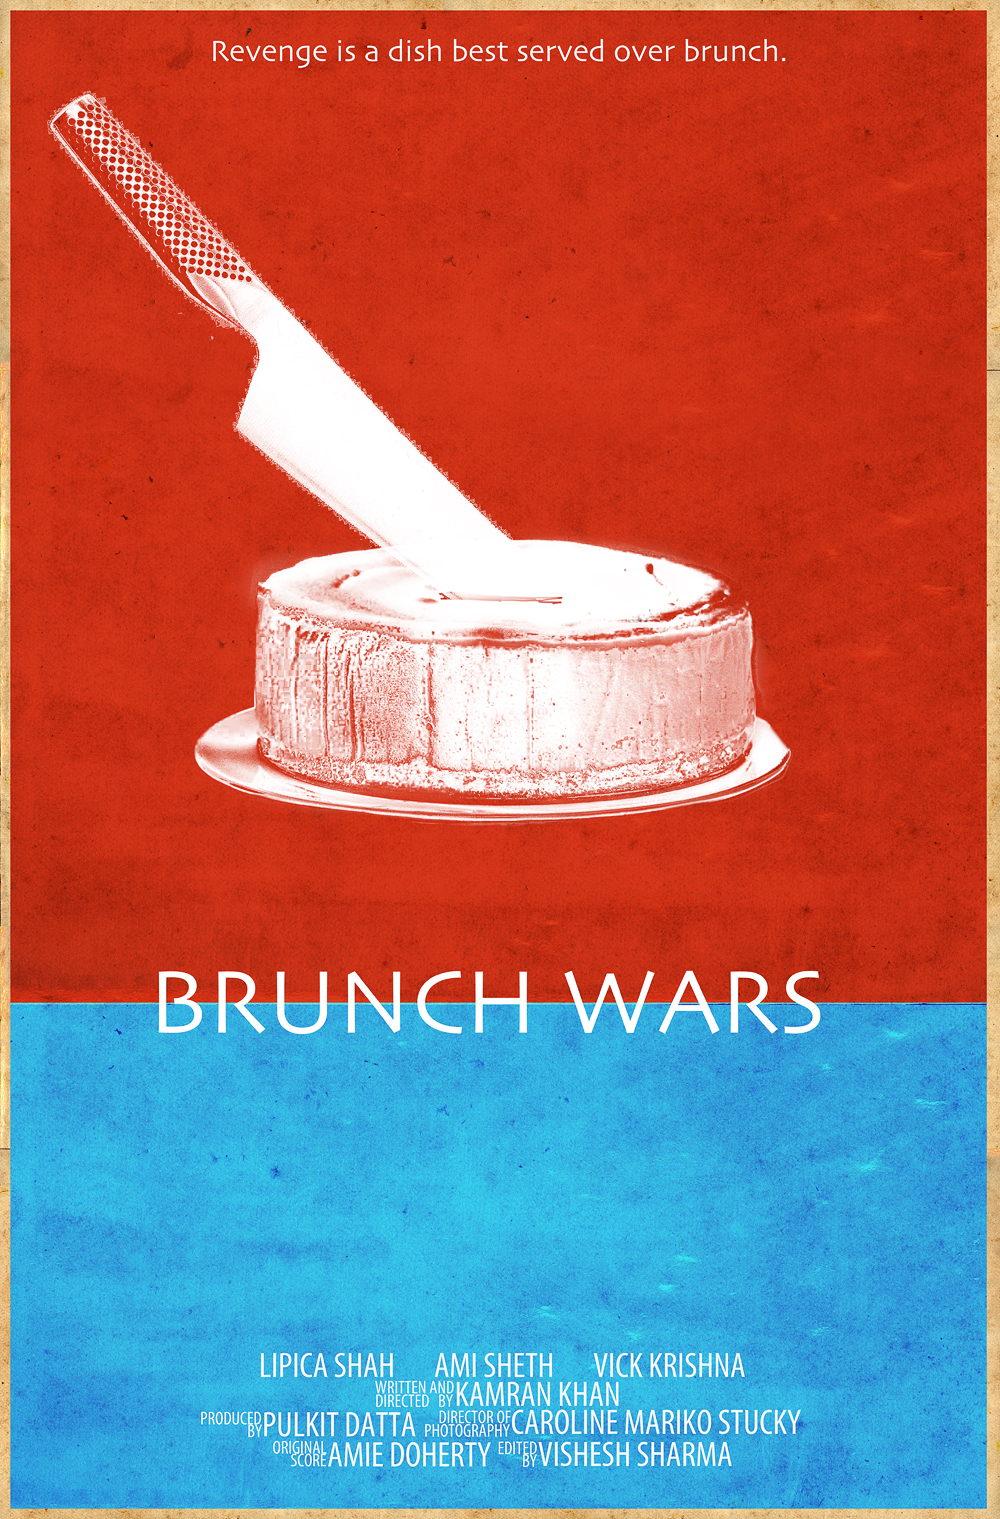 BRUNCH WARS  / Dir: Kamran Khan   Starring Ami Sheth, Lipica Shah, Vick Krishna / In festivals